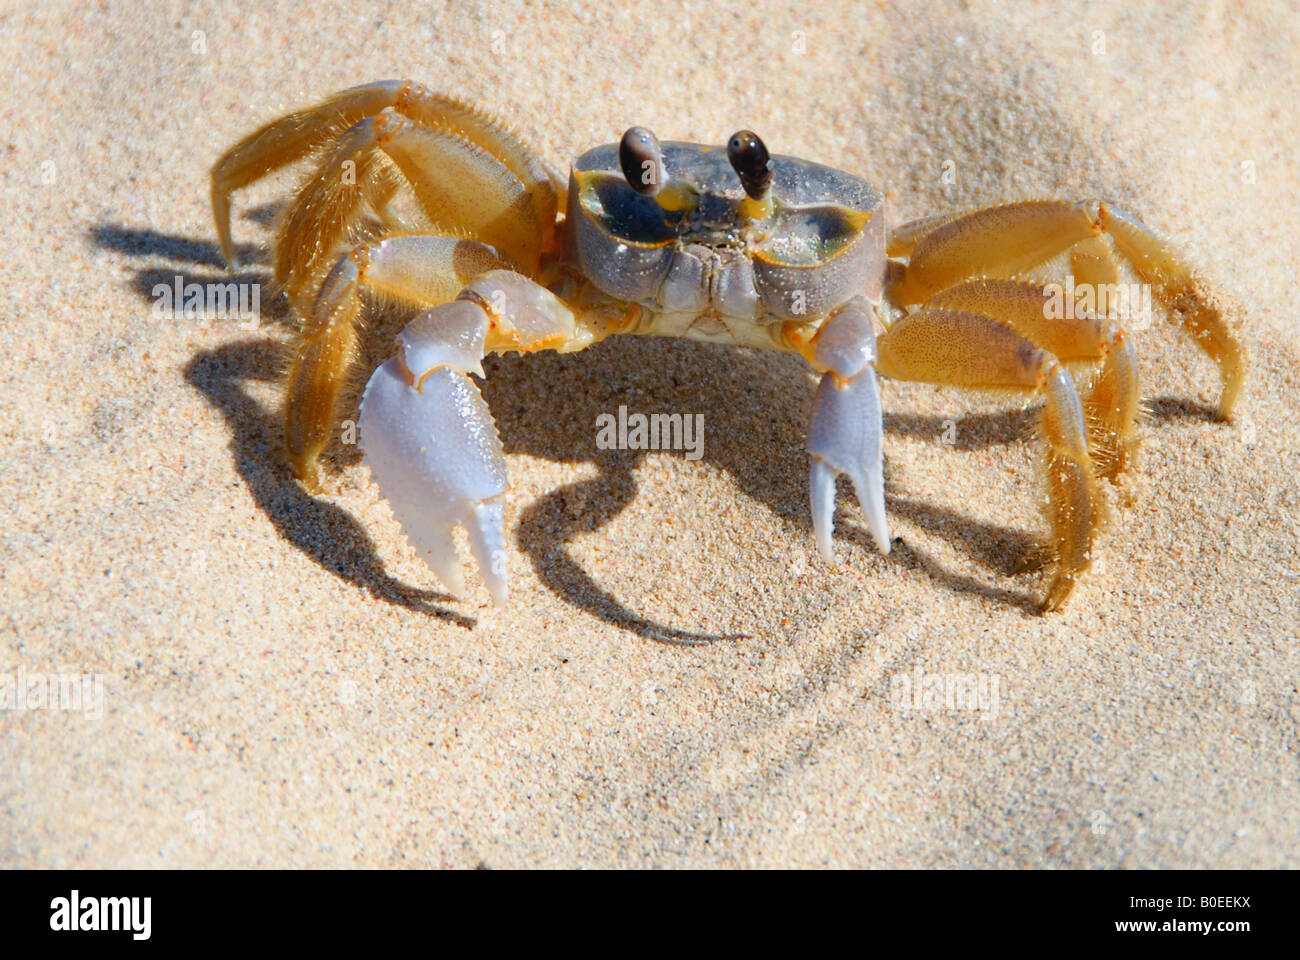 A crab on the beach - Stock Image